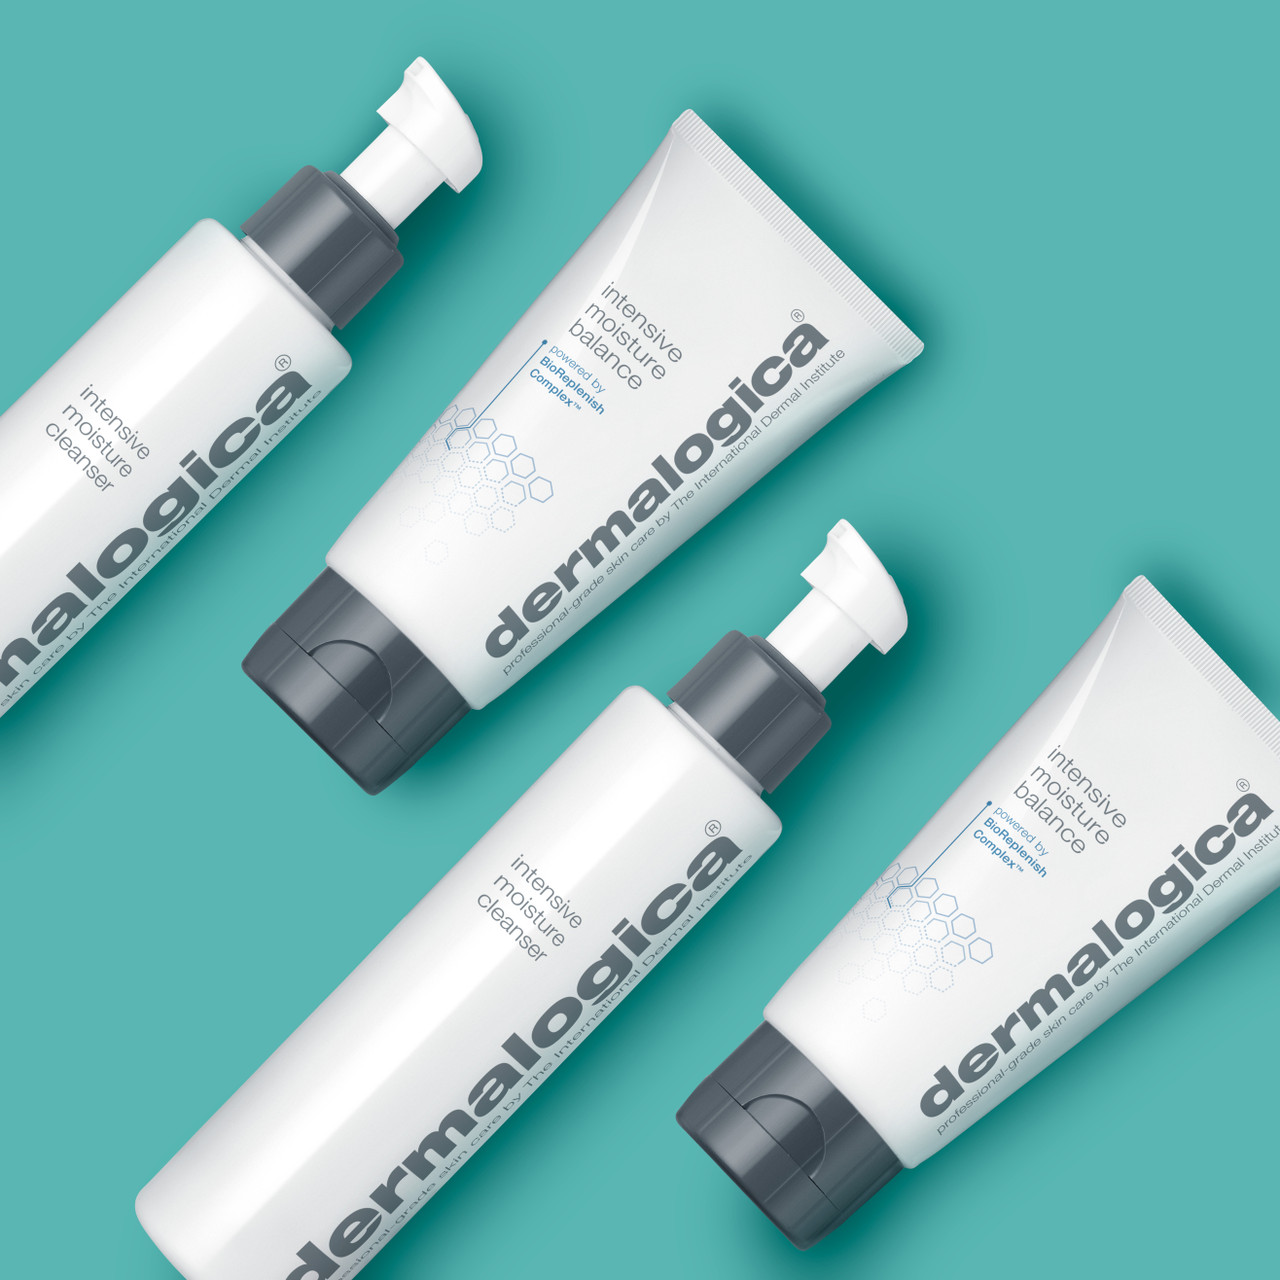 NEW! dermalogica intensive moisture products